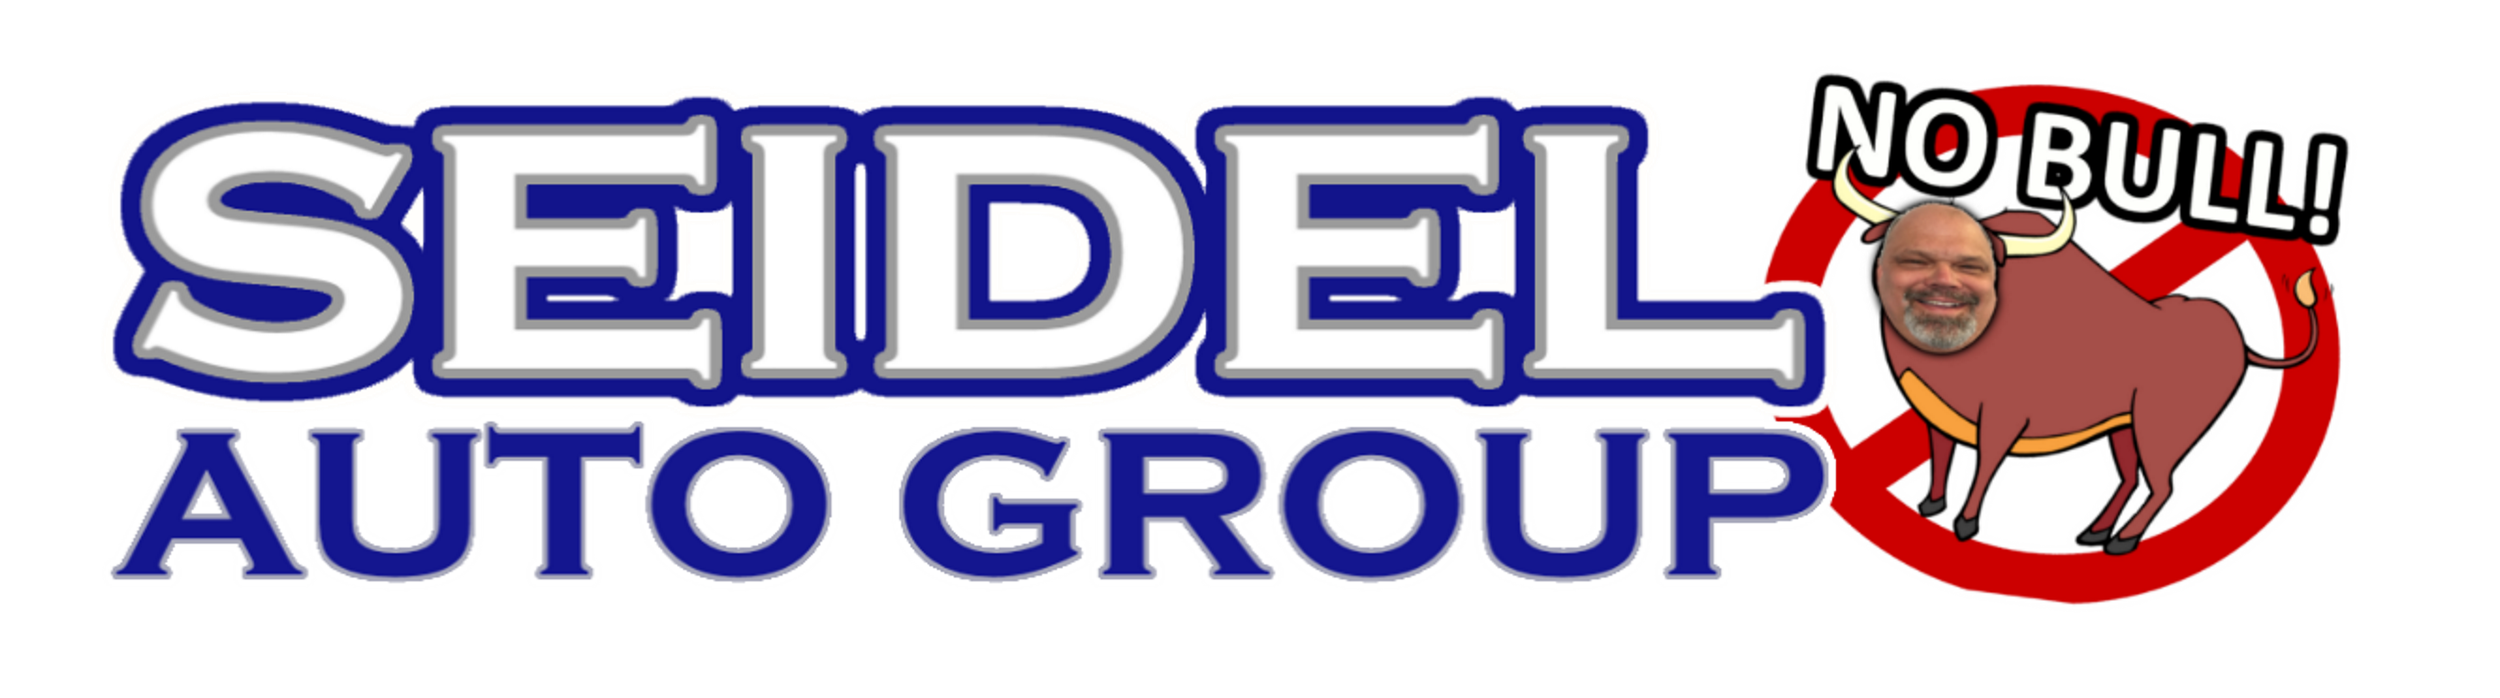 Seidel Auto Group with No Bull - White Background.png